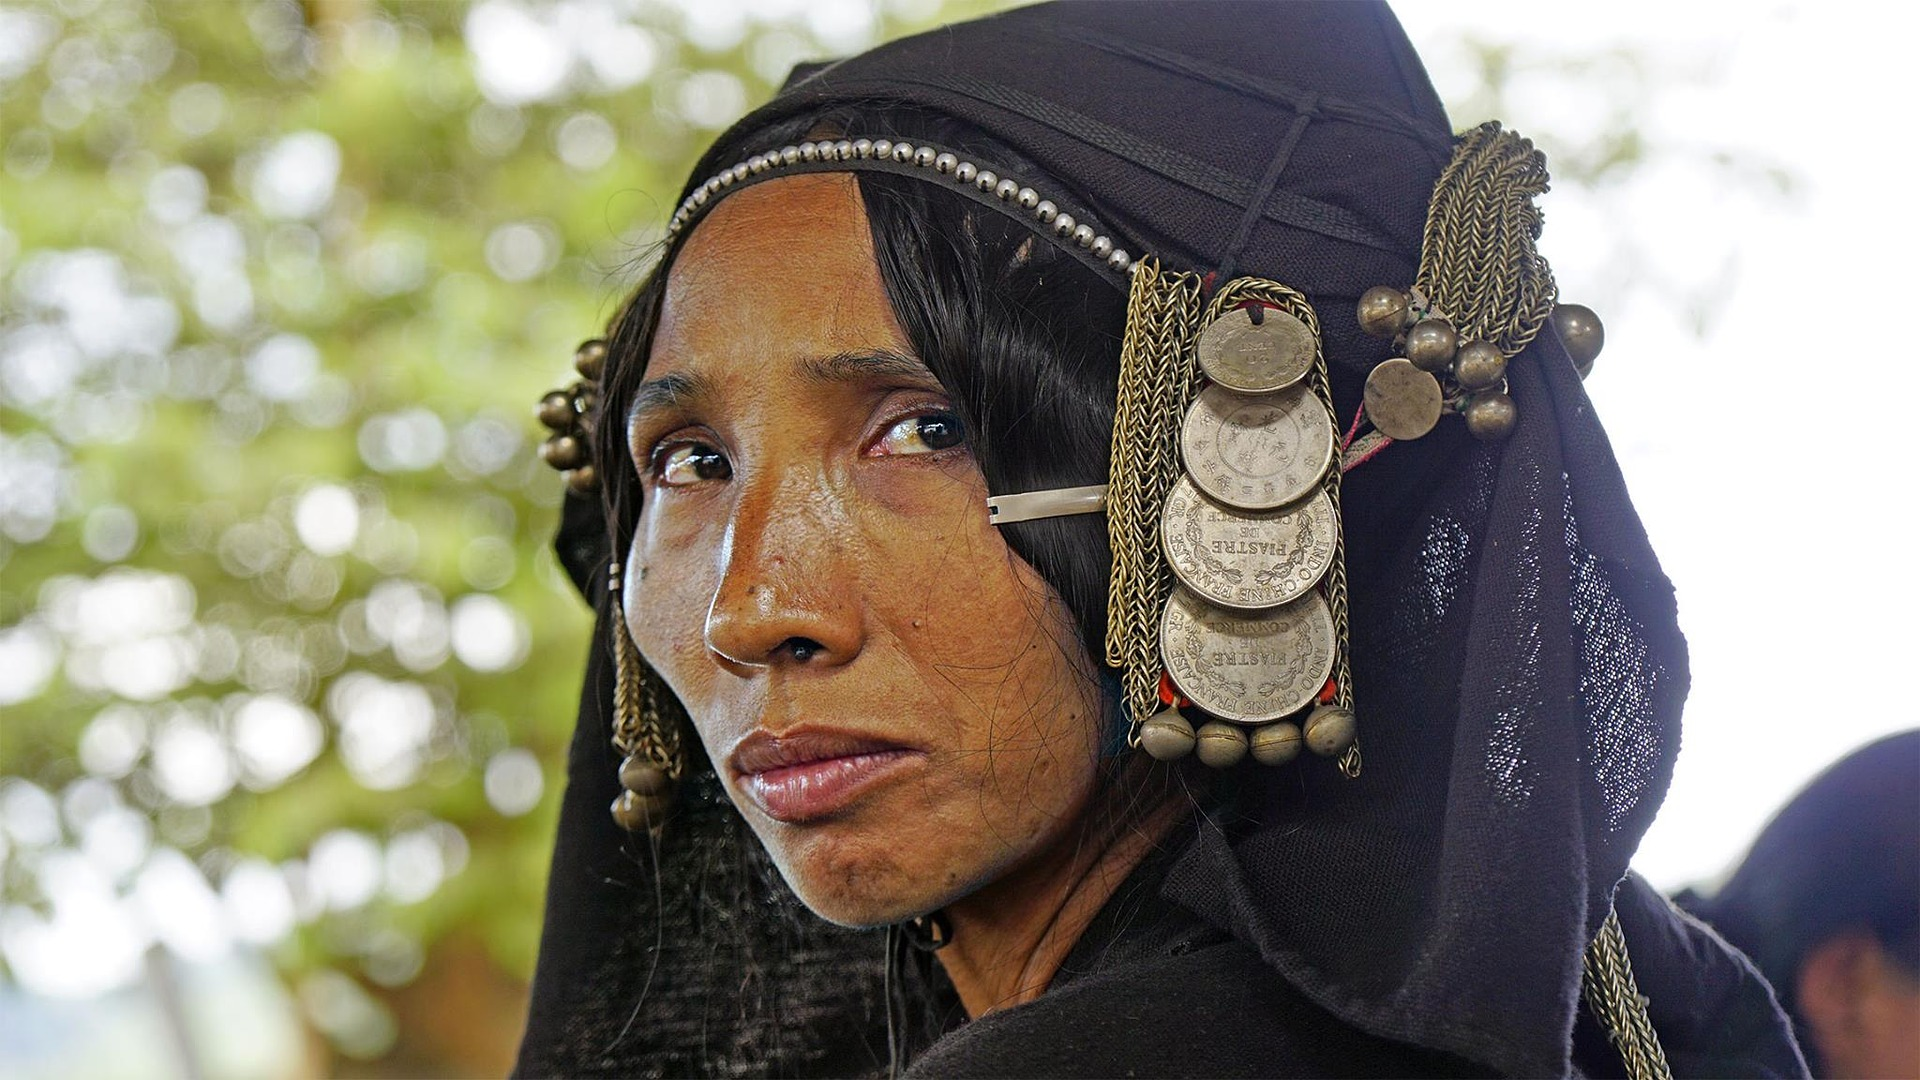 Oma Woman in Laos wearing a fashion style that was appropriated by fashion design house Max Mara.